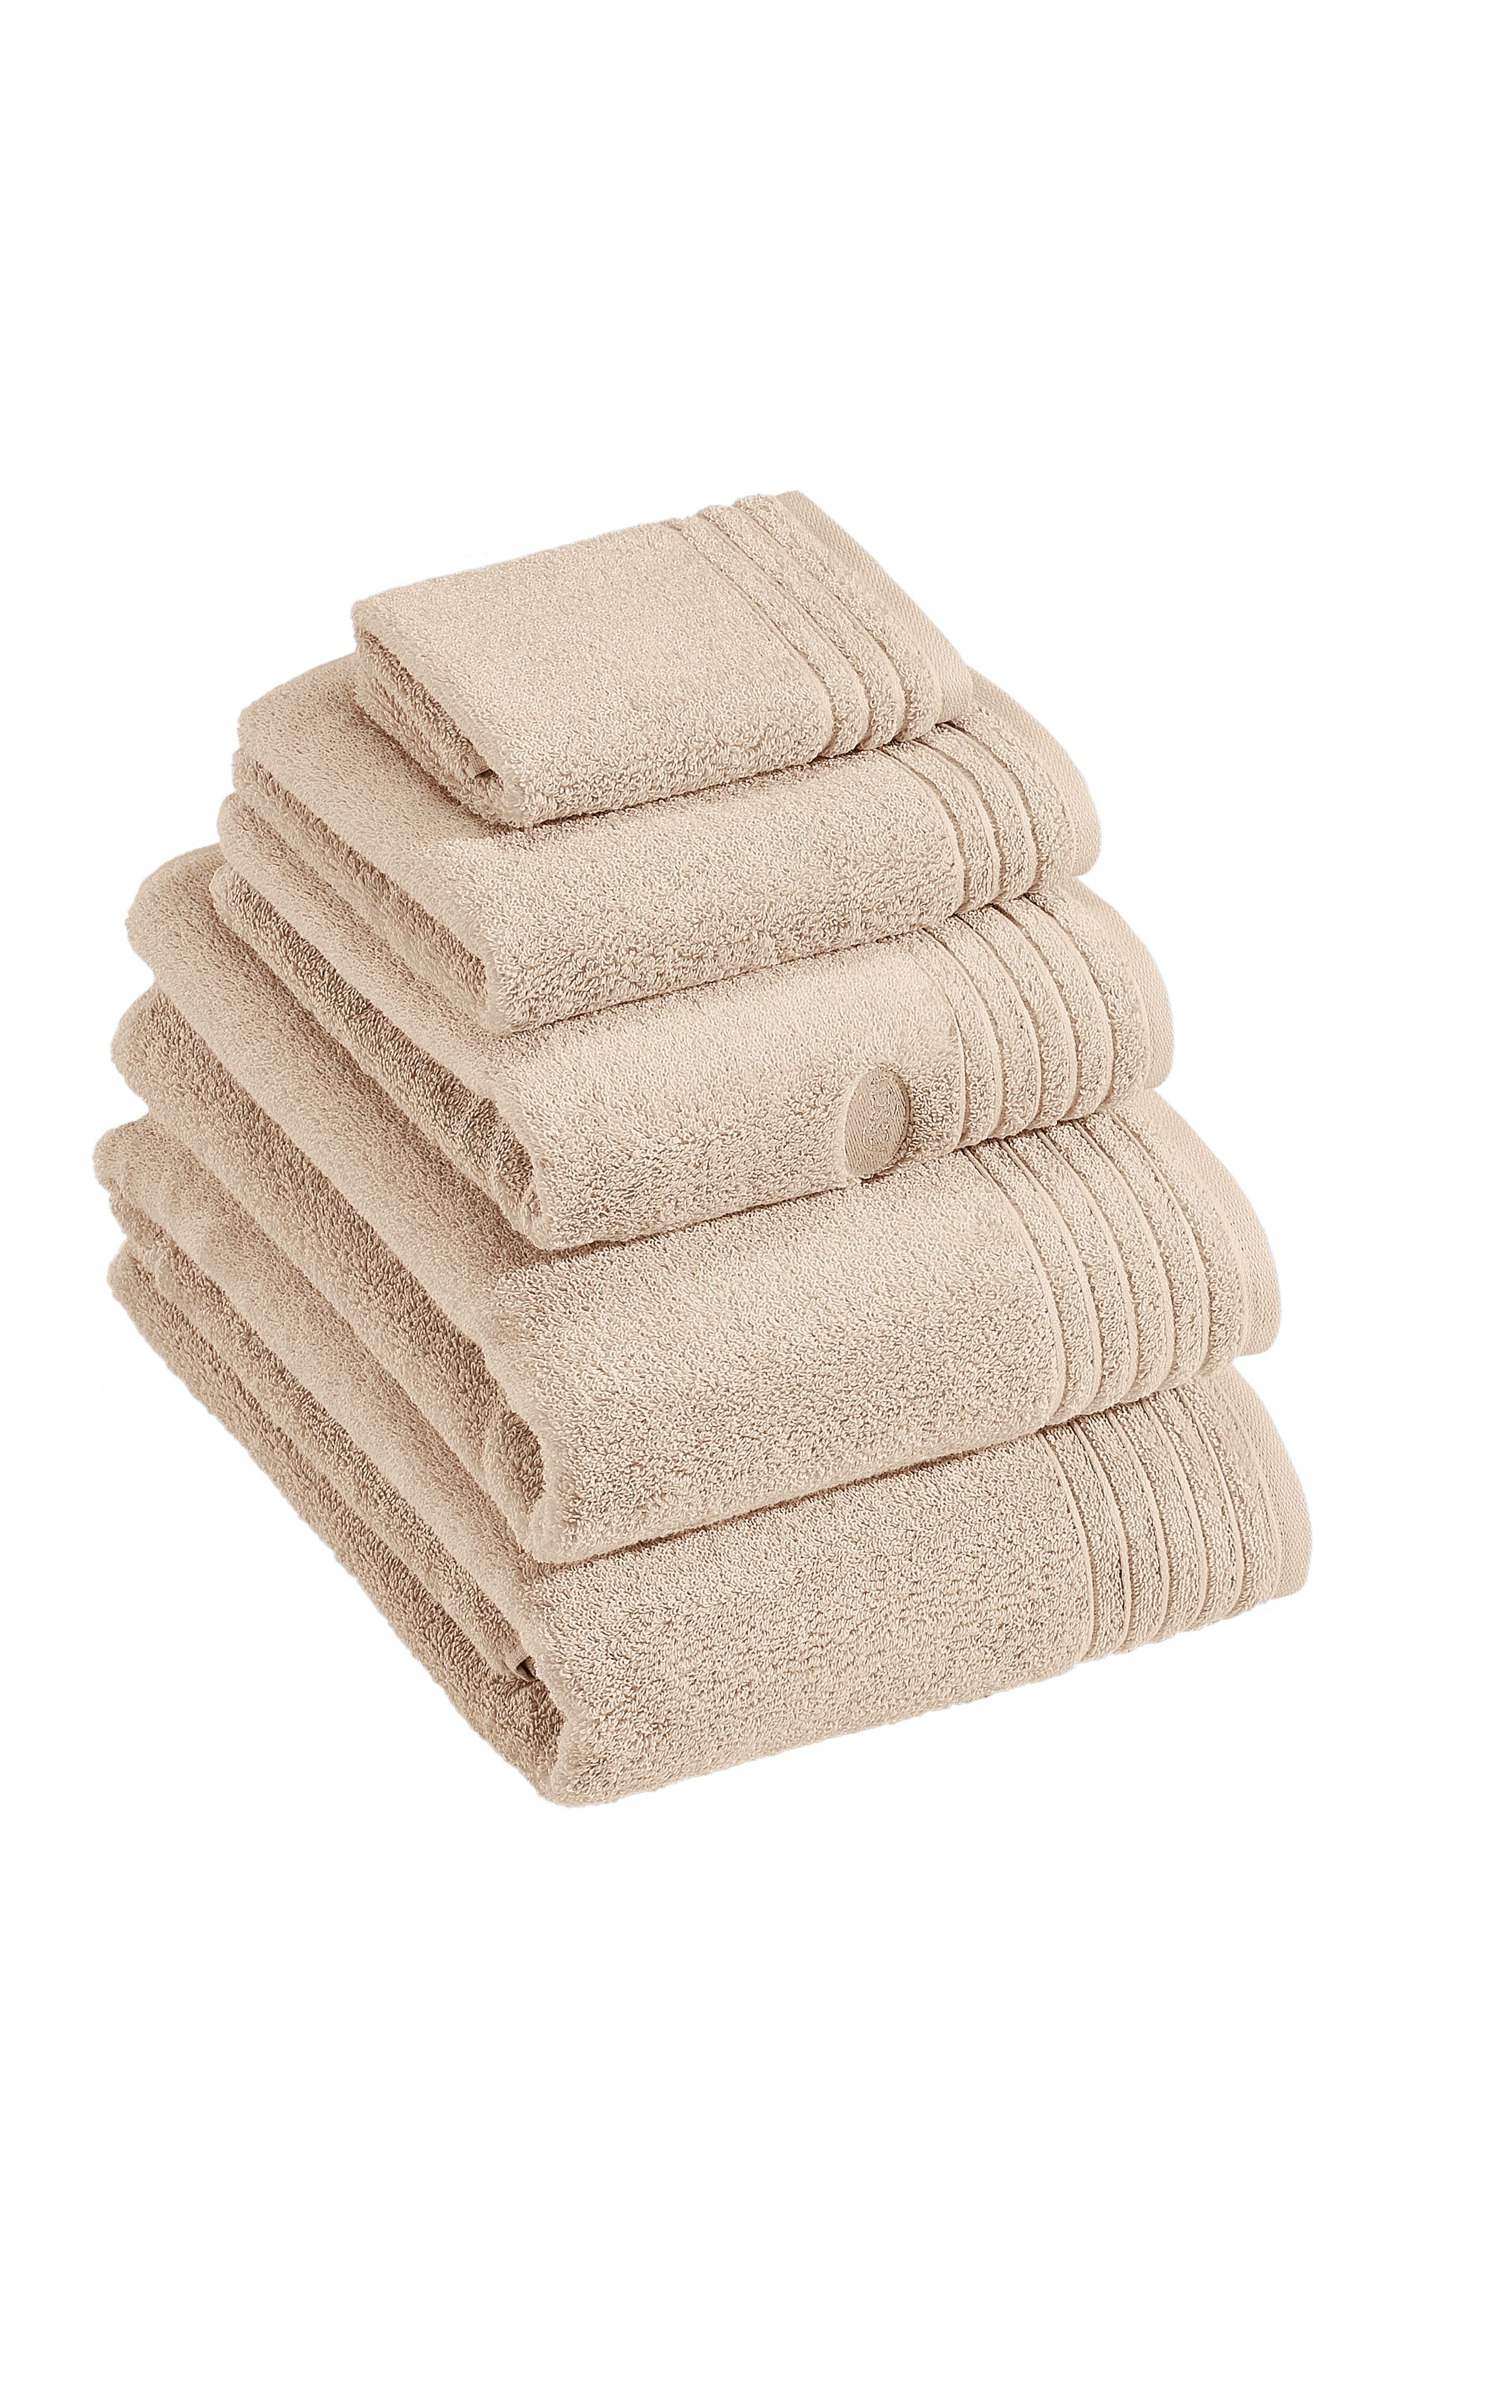 Dreams towel range in ceramic